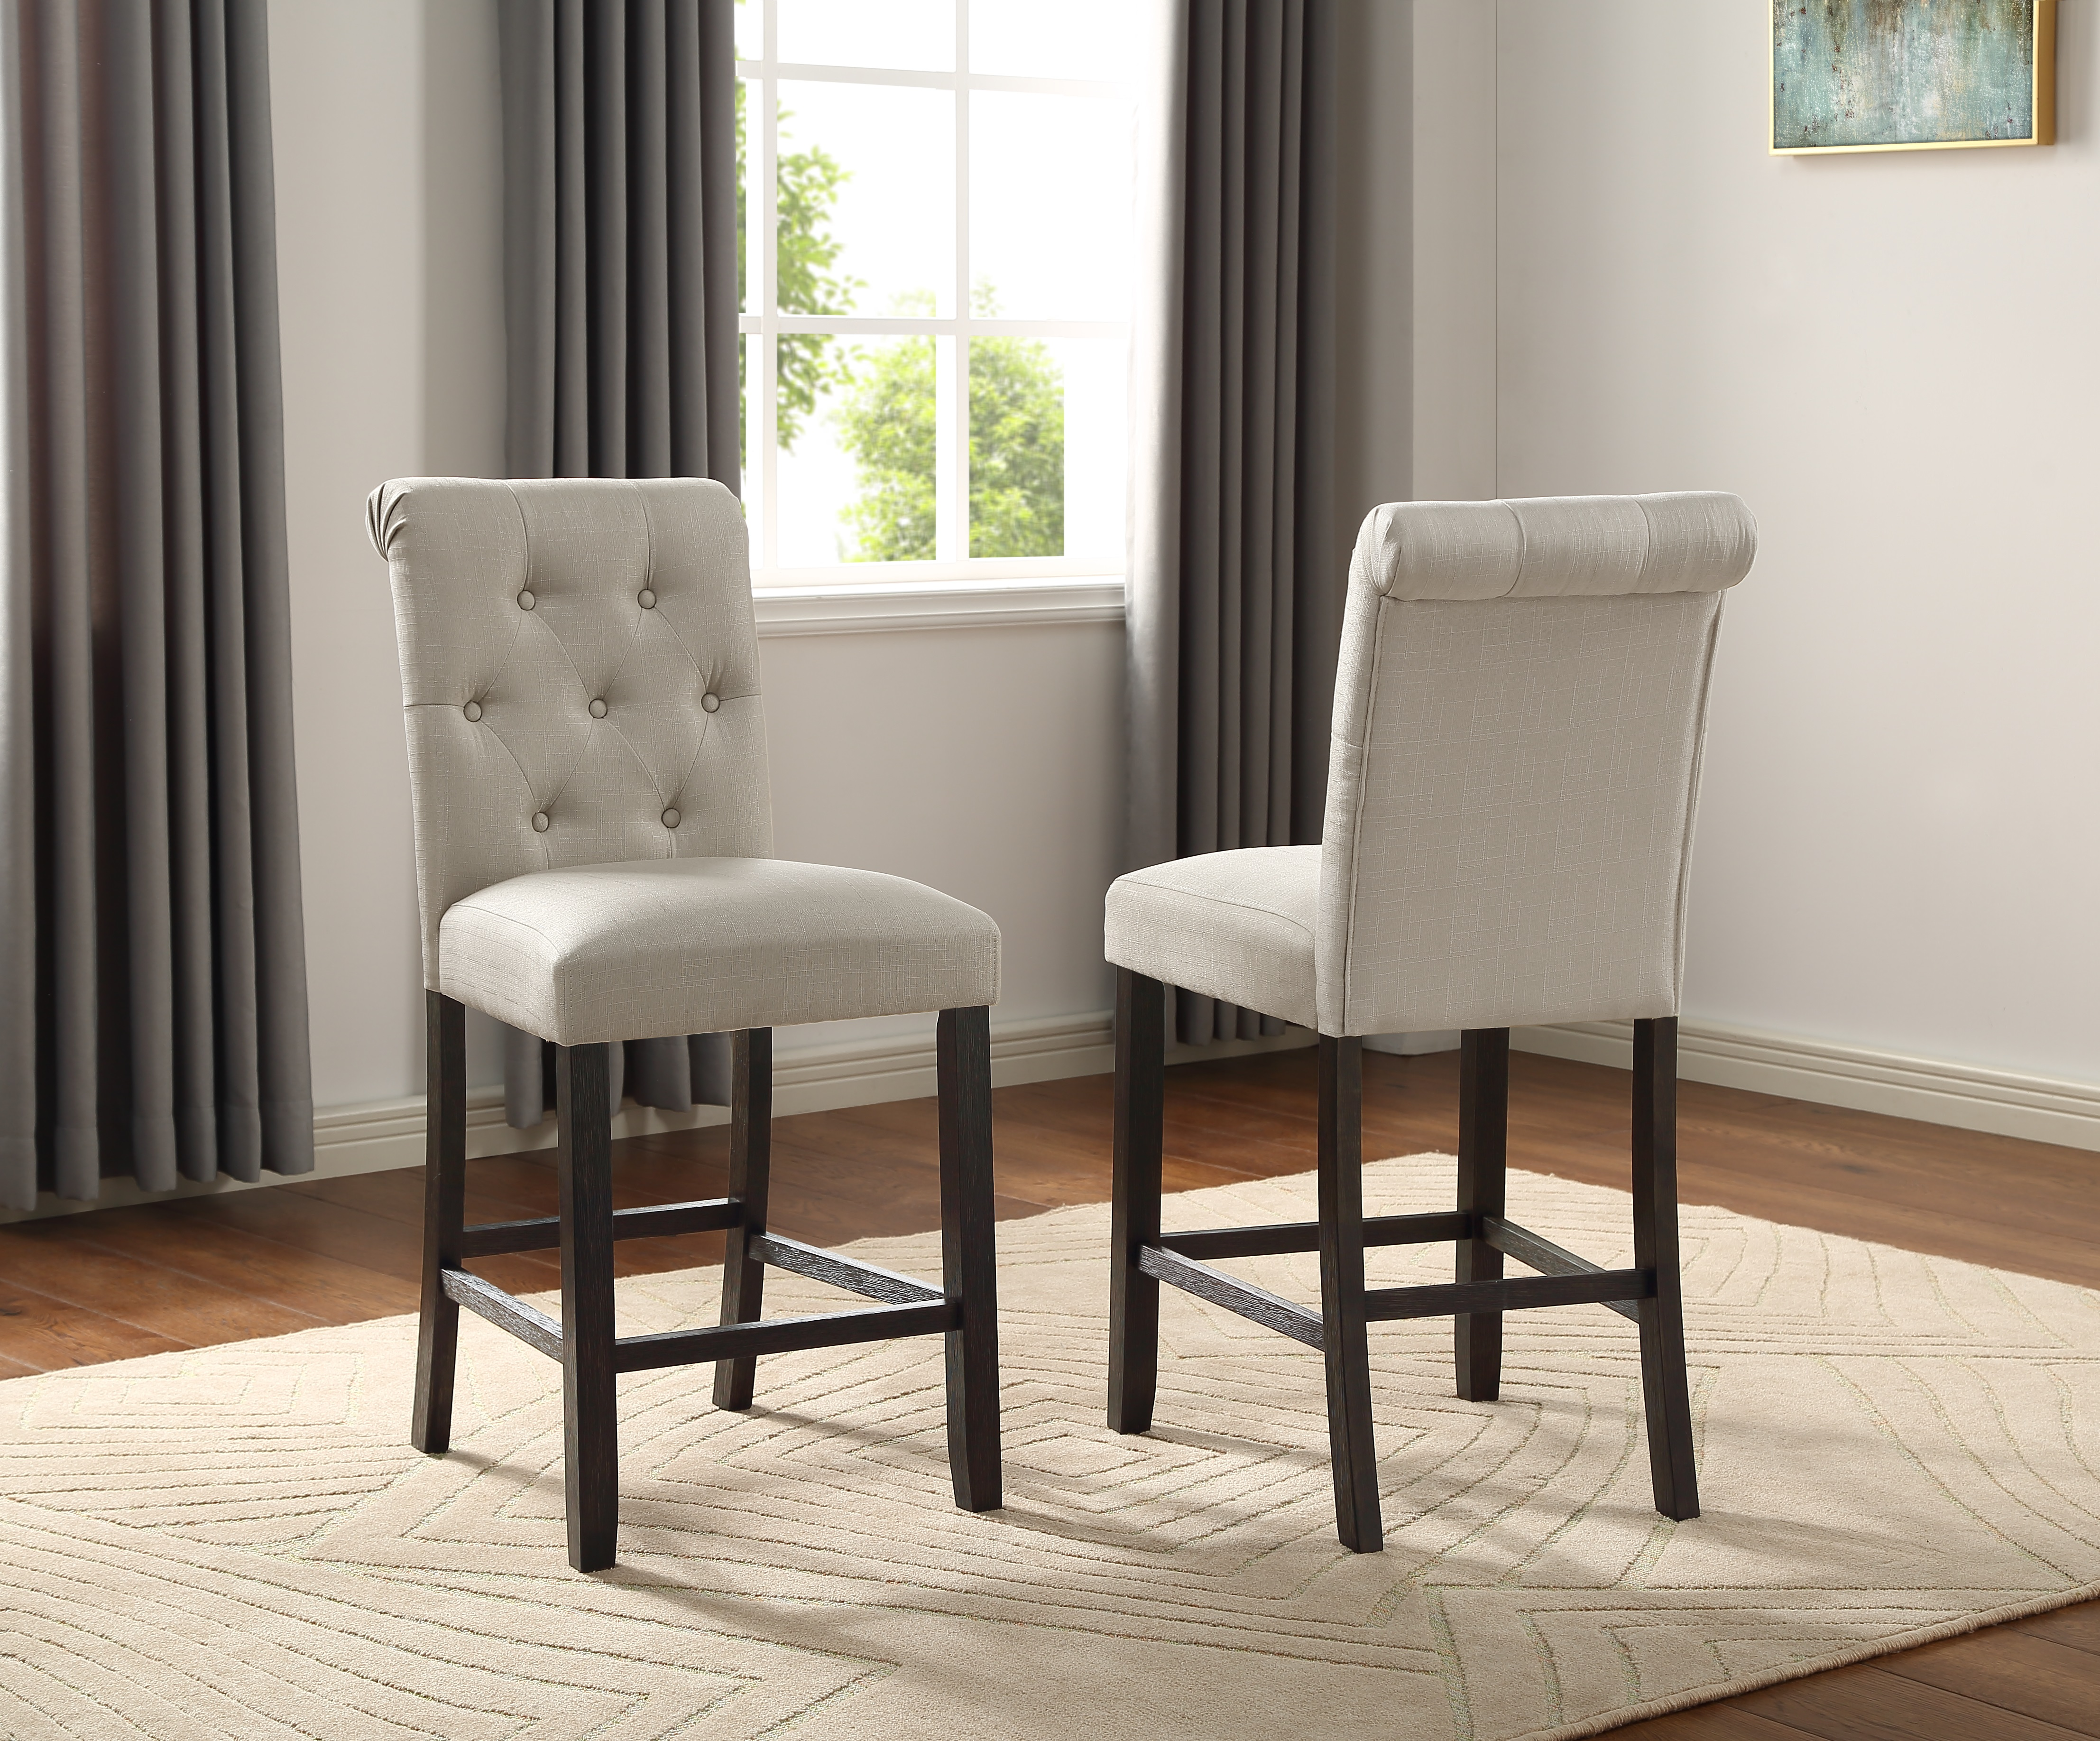 Use the landon dining chair for a sleek modern farmhouse charm in your kitchen or dining room. Leviton Solid Wood Tufted Asons Counter Height Dining ...